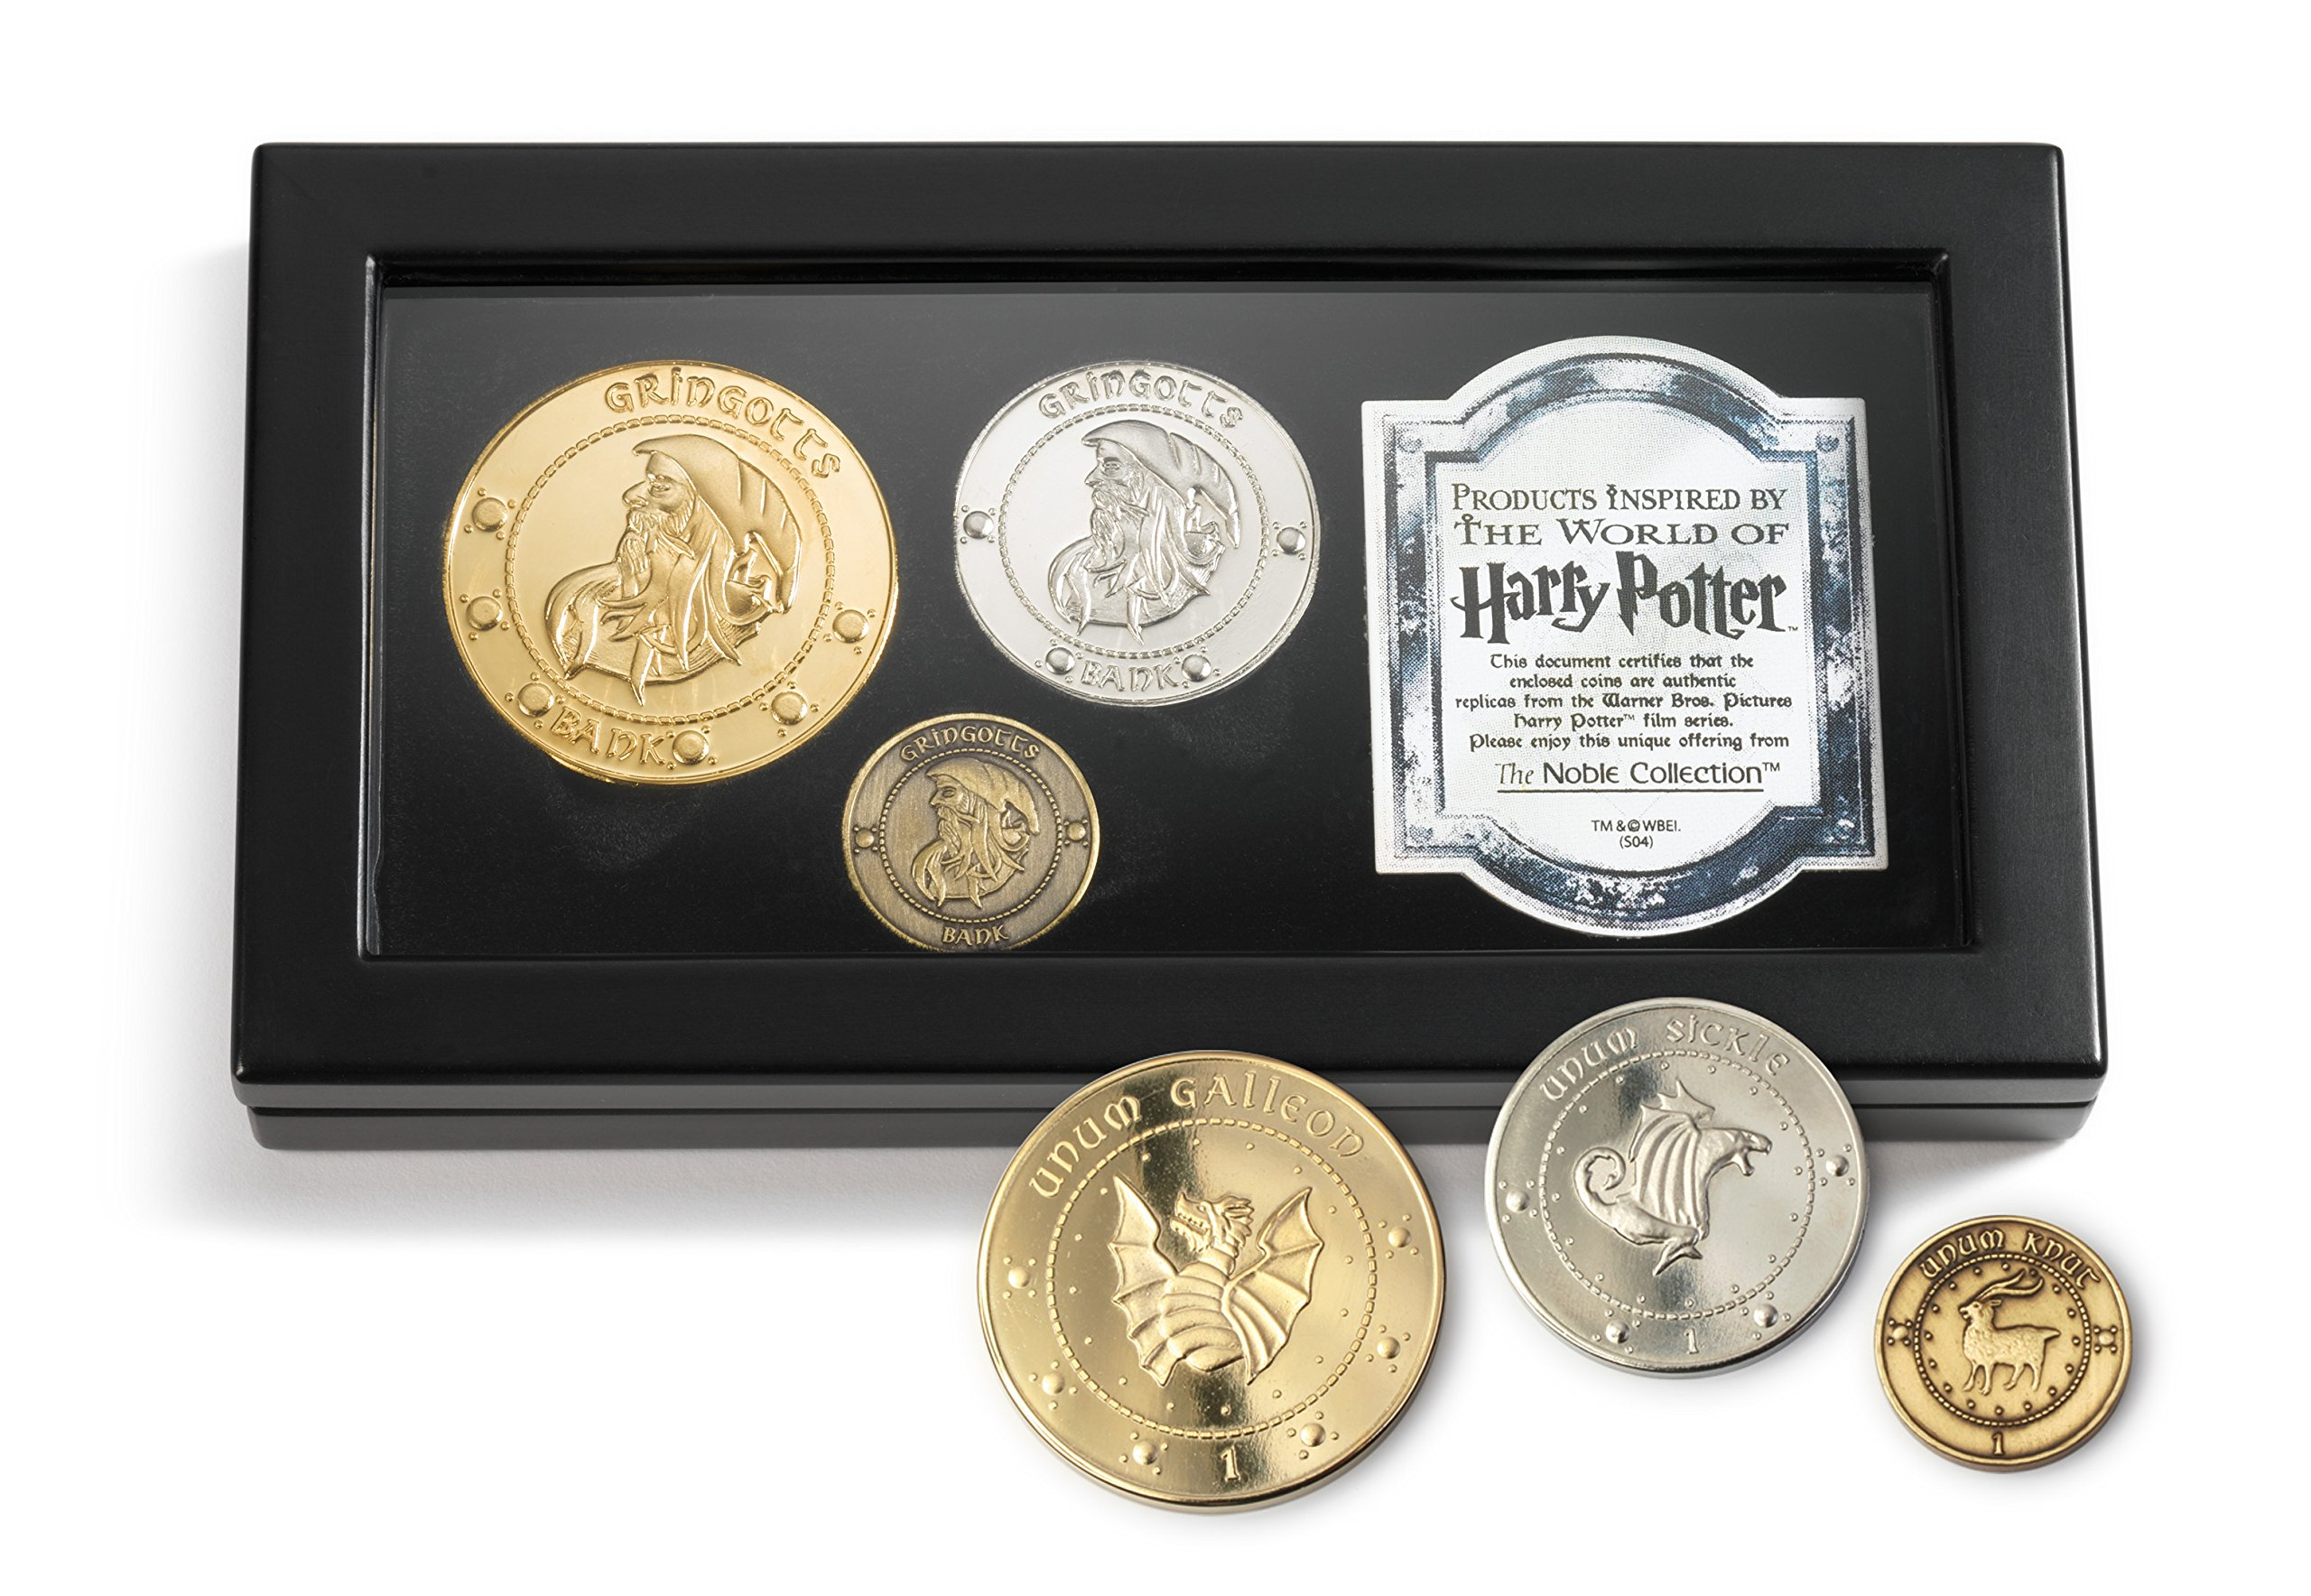 Harry Potter Gringotts Bank Coin Collection by The Noble Collection (Image #1)